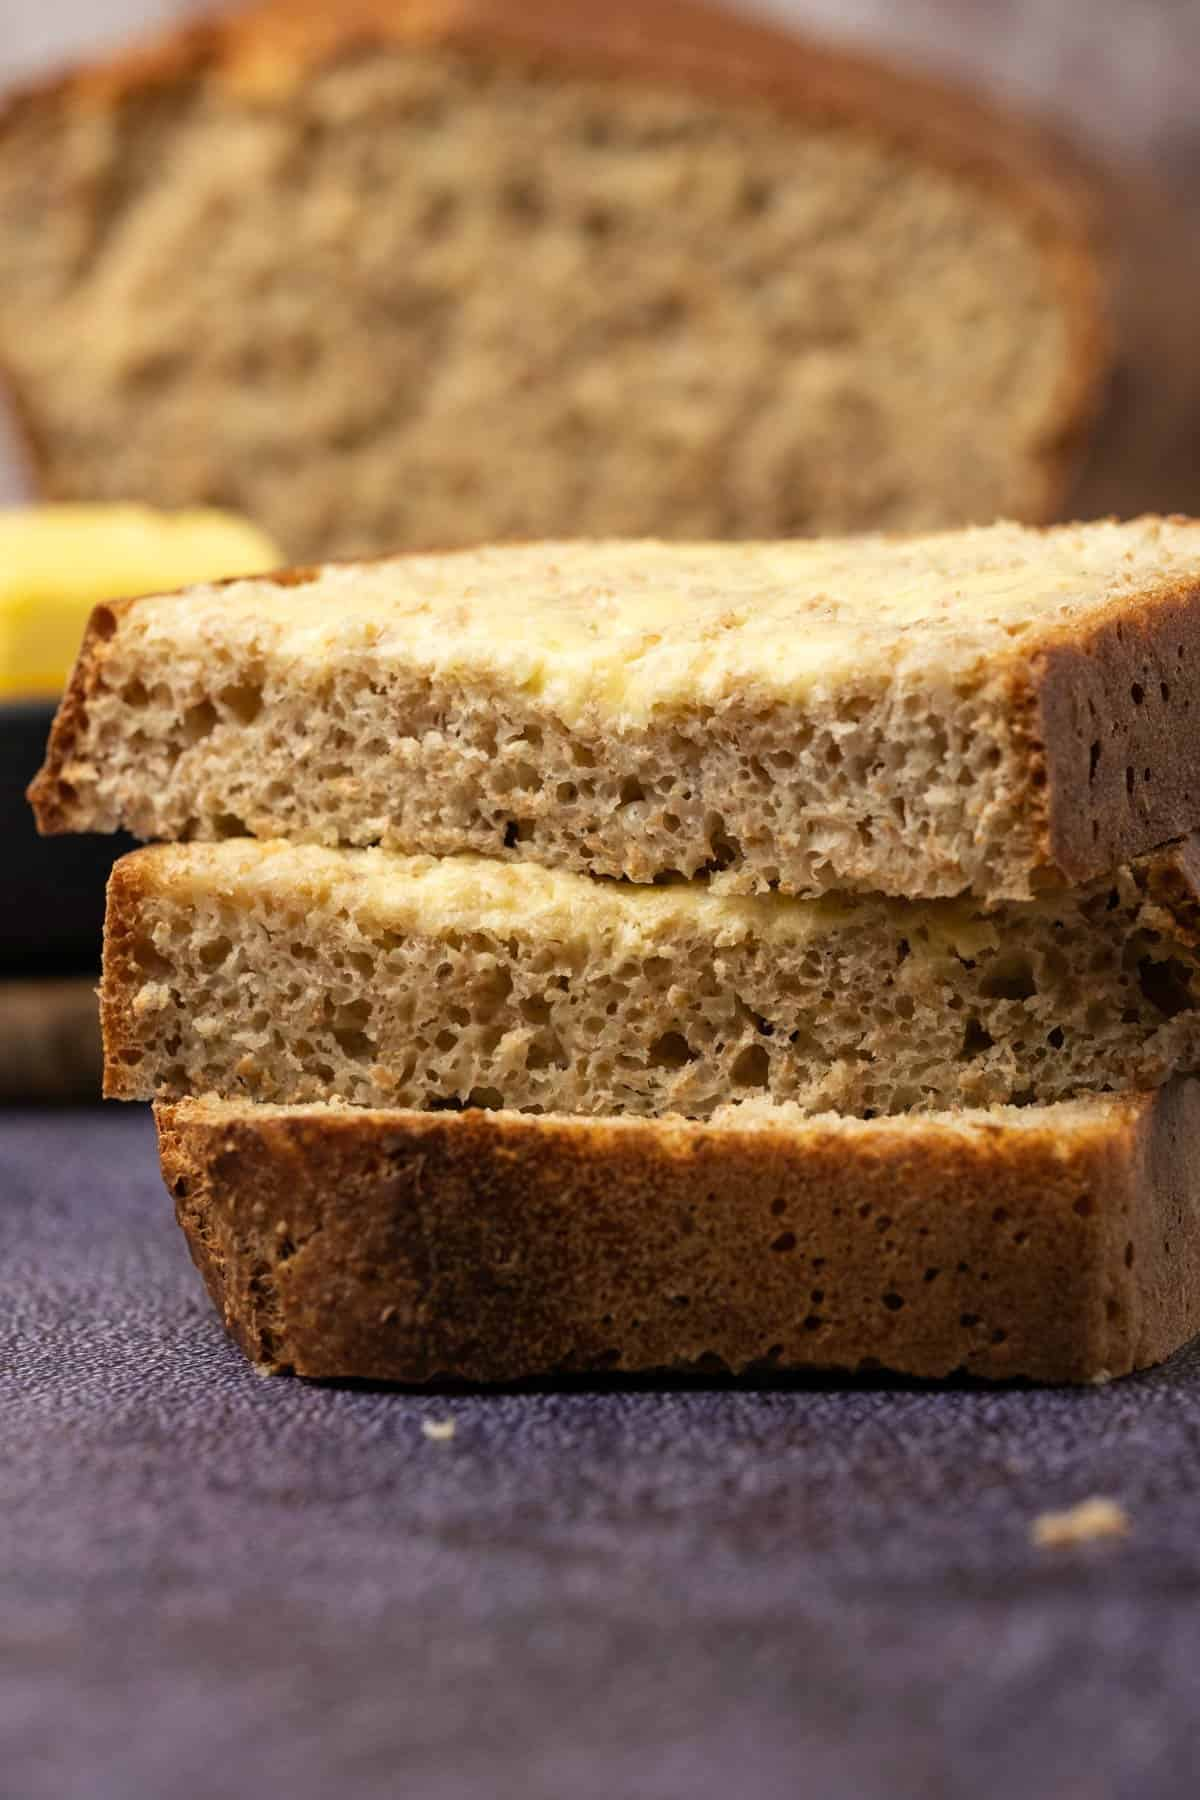 Slices of buttered homemade brown bread in a stack.